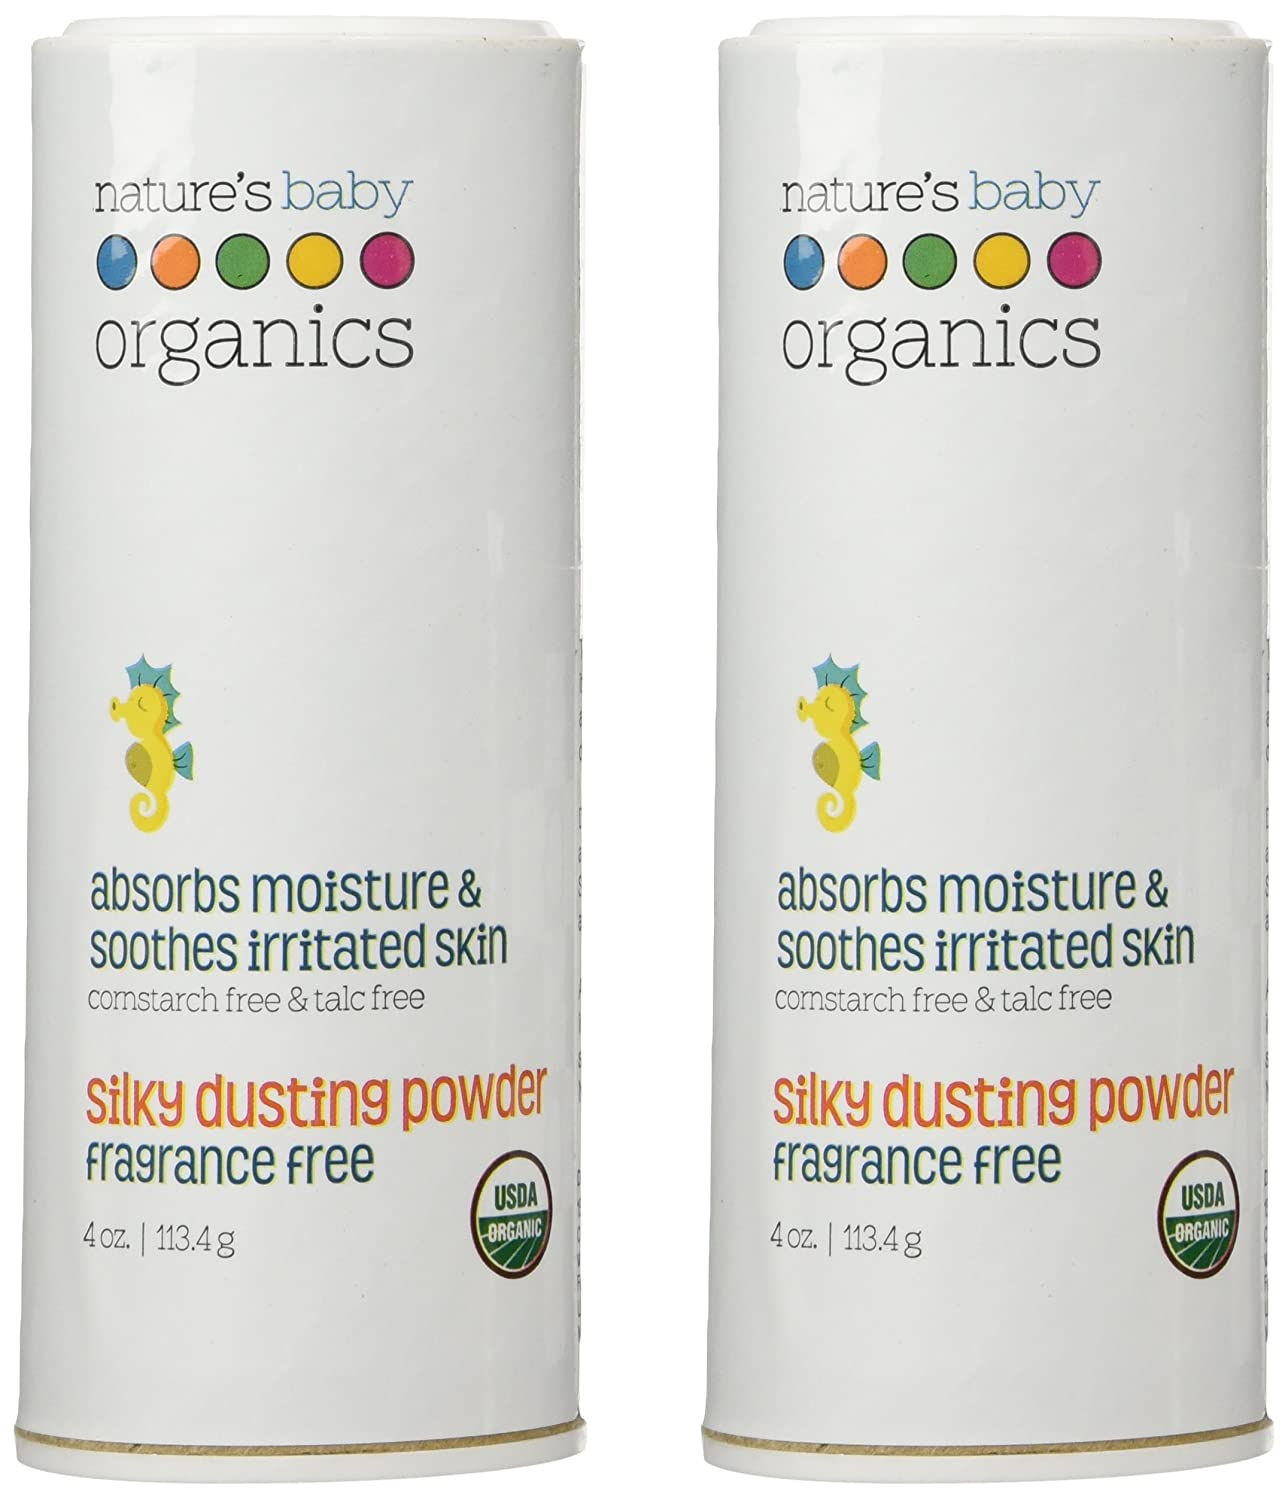 Nature's Baby Organics Silky Dusting Powder, Fragrance Free, 4-Ounce Container (Pack of 2) Natures Baby Organics -3778